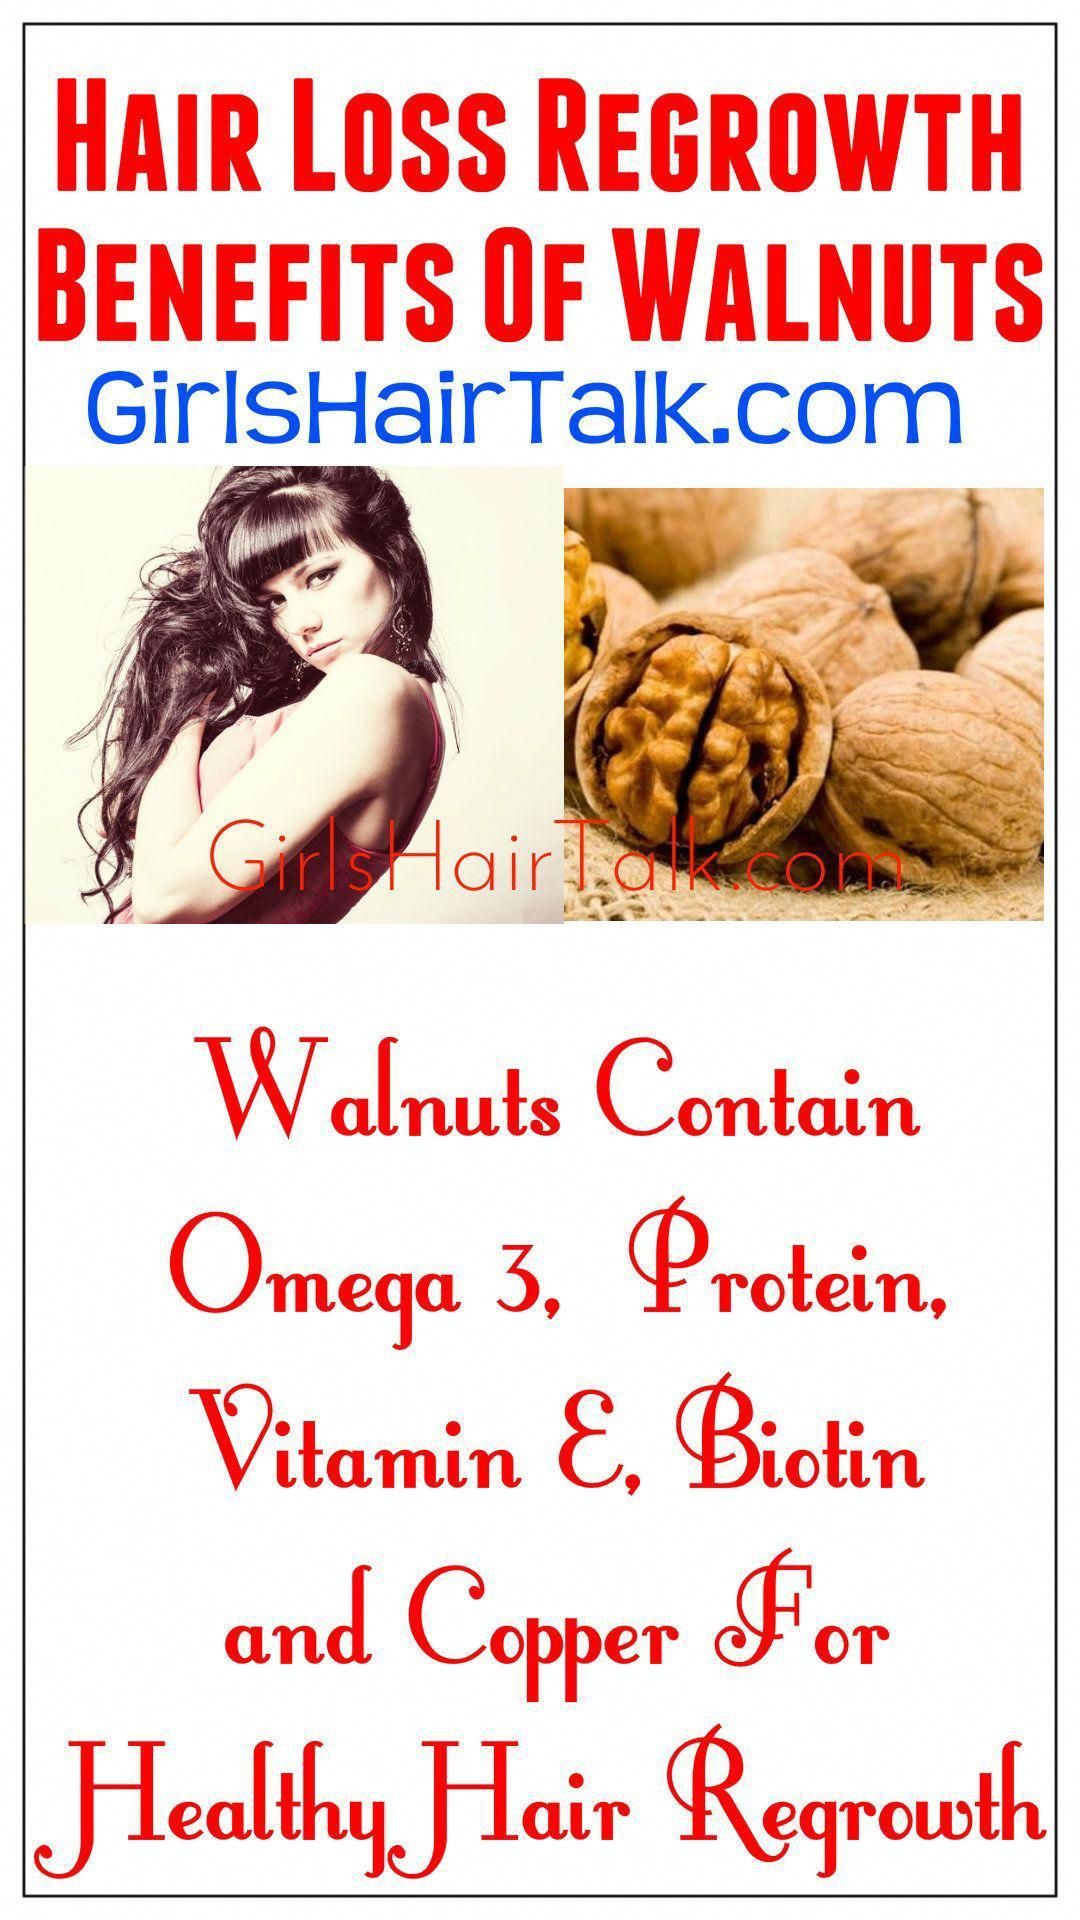 Dessert Recipe For Hair Loss Regrowth Benefits of walnuts